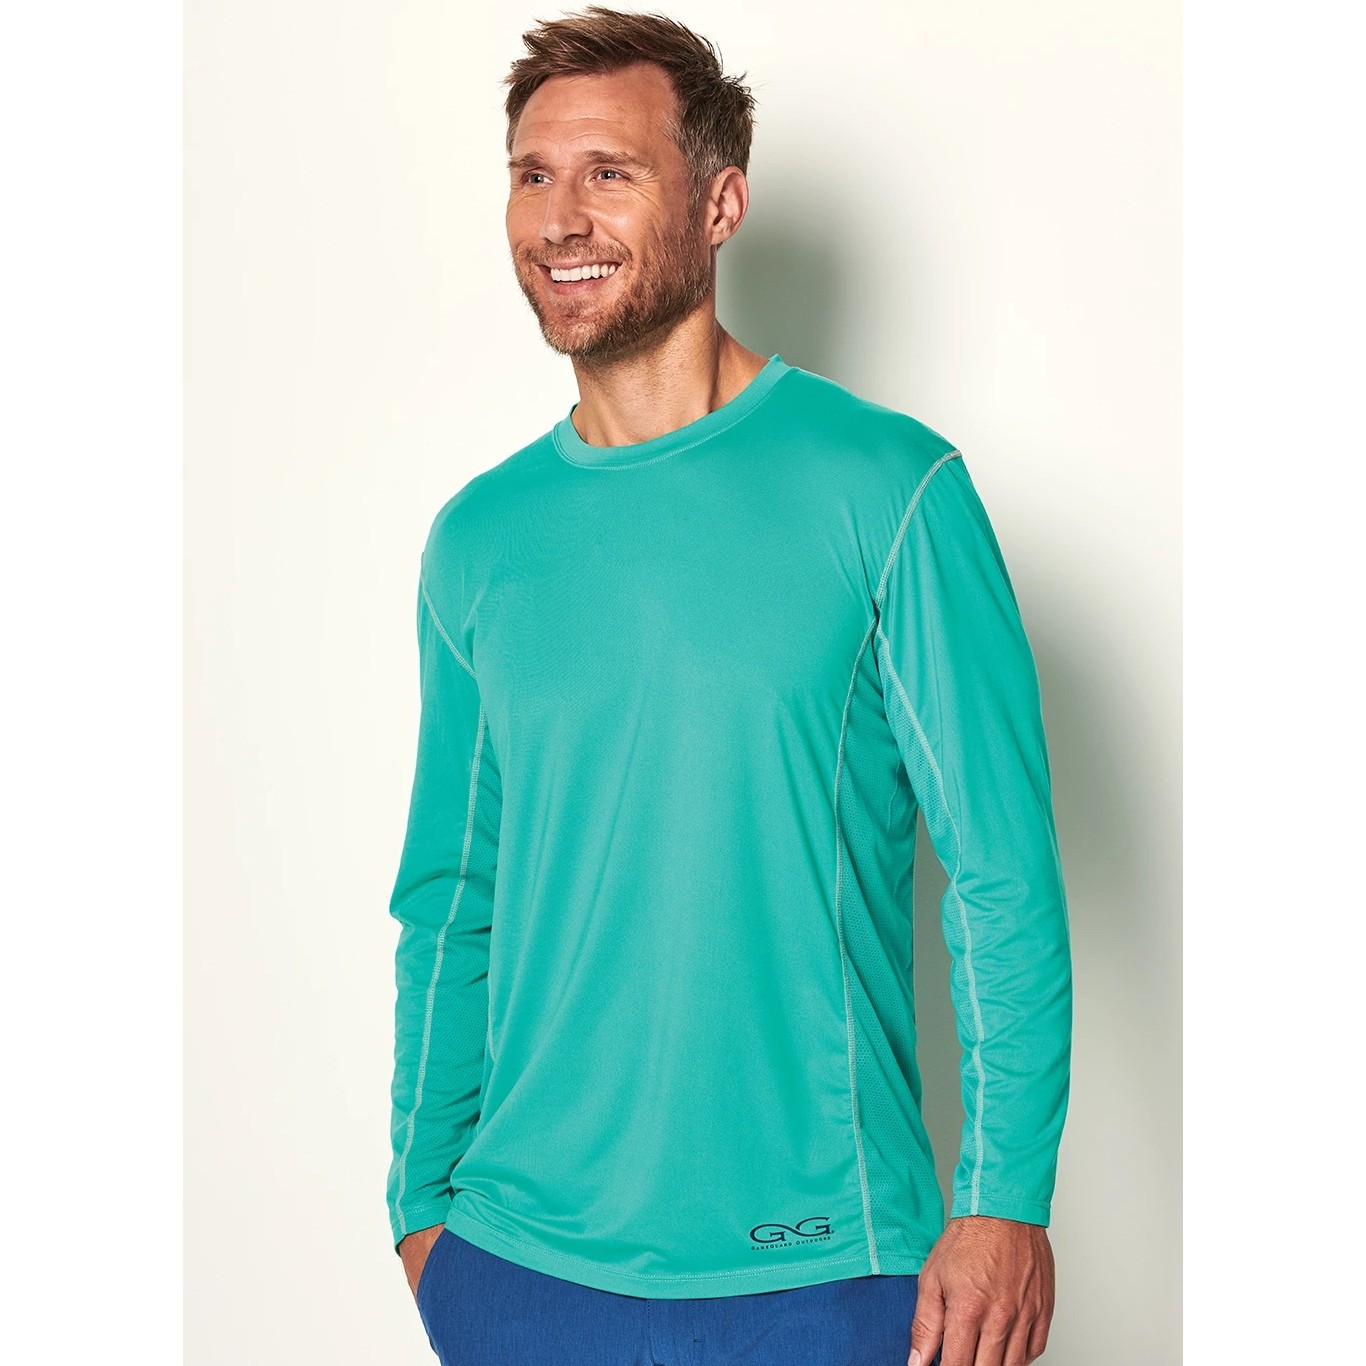 GameGuard Men's Caribbean Long Sleeve Performance Tee